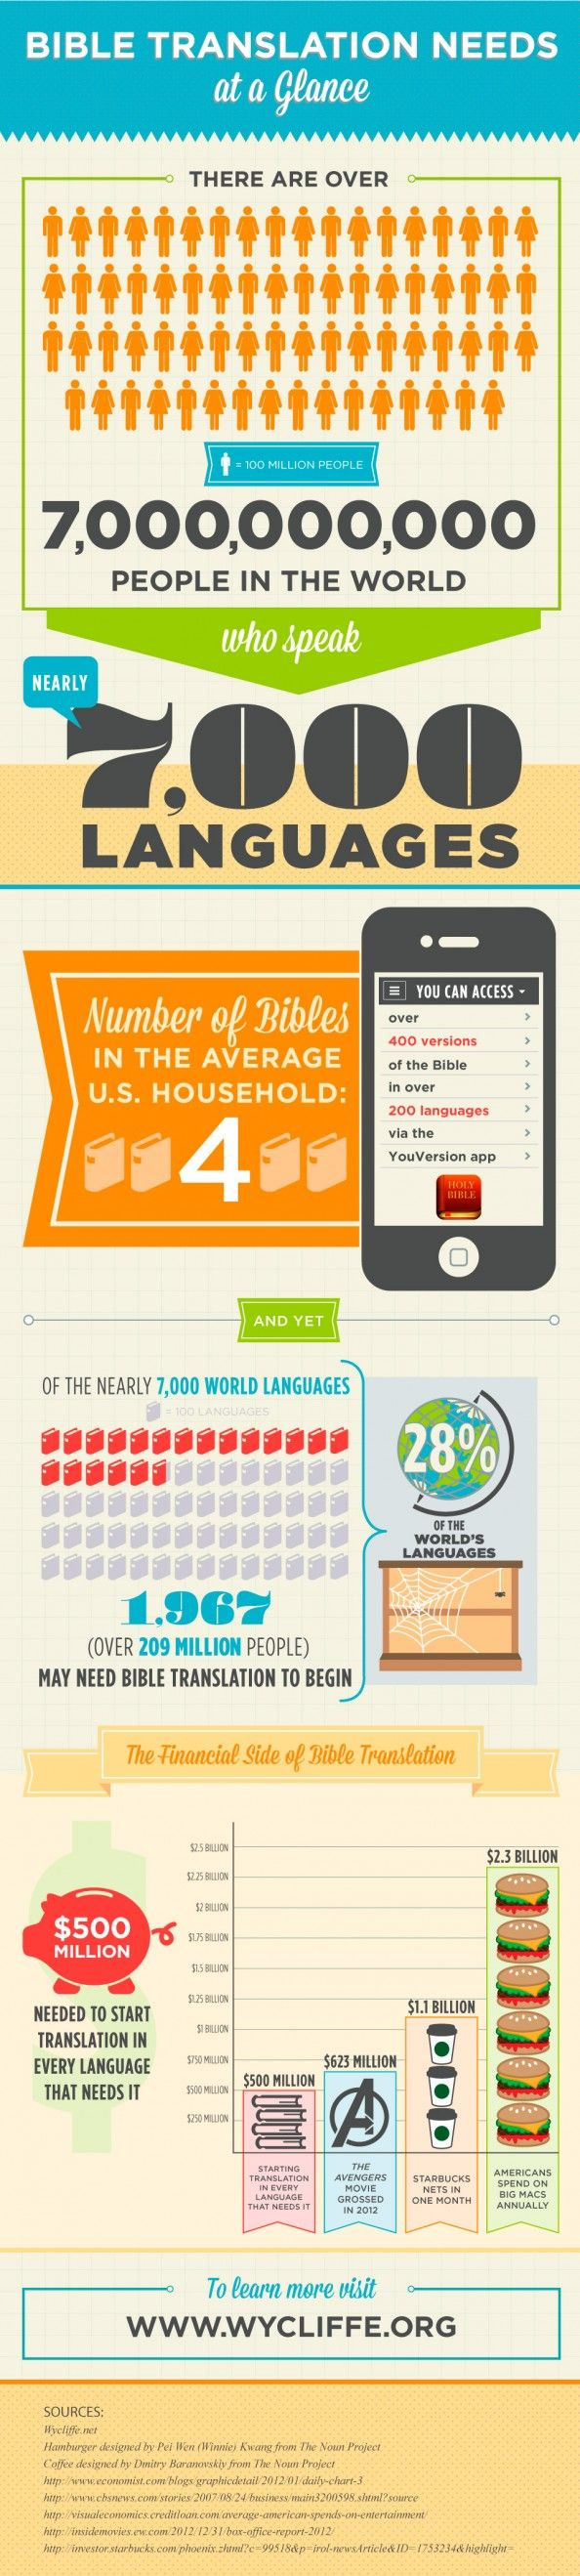 Bible Translation Needs at a Glance Infographic